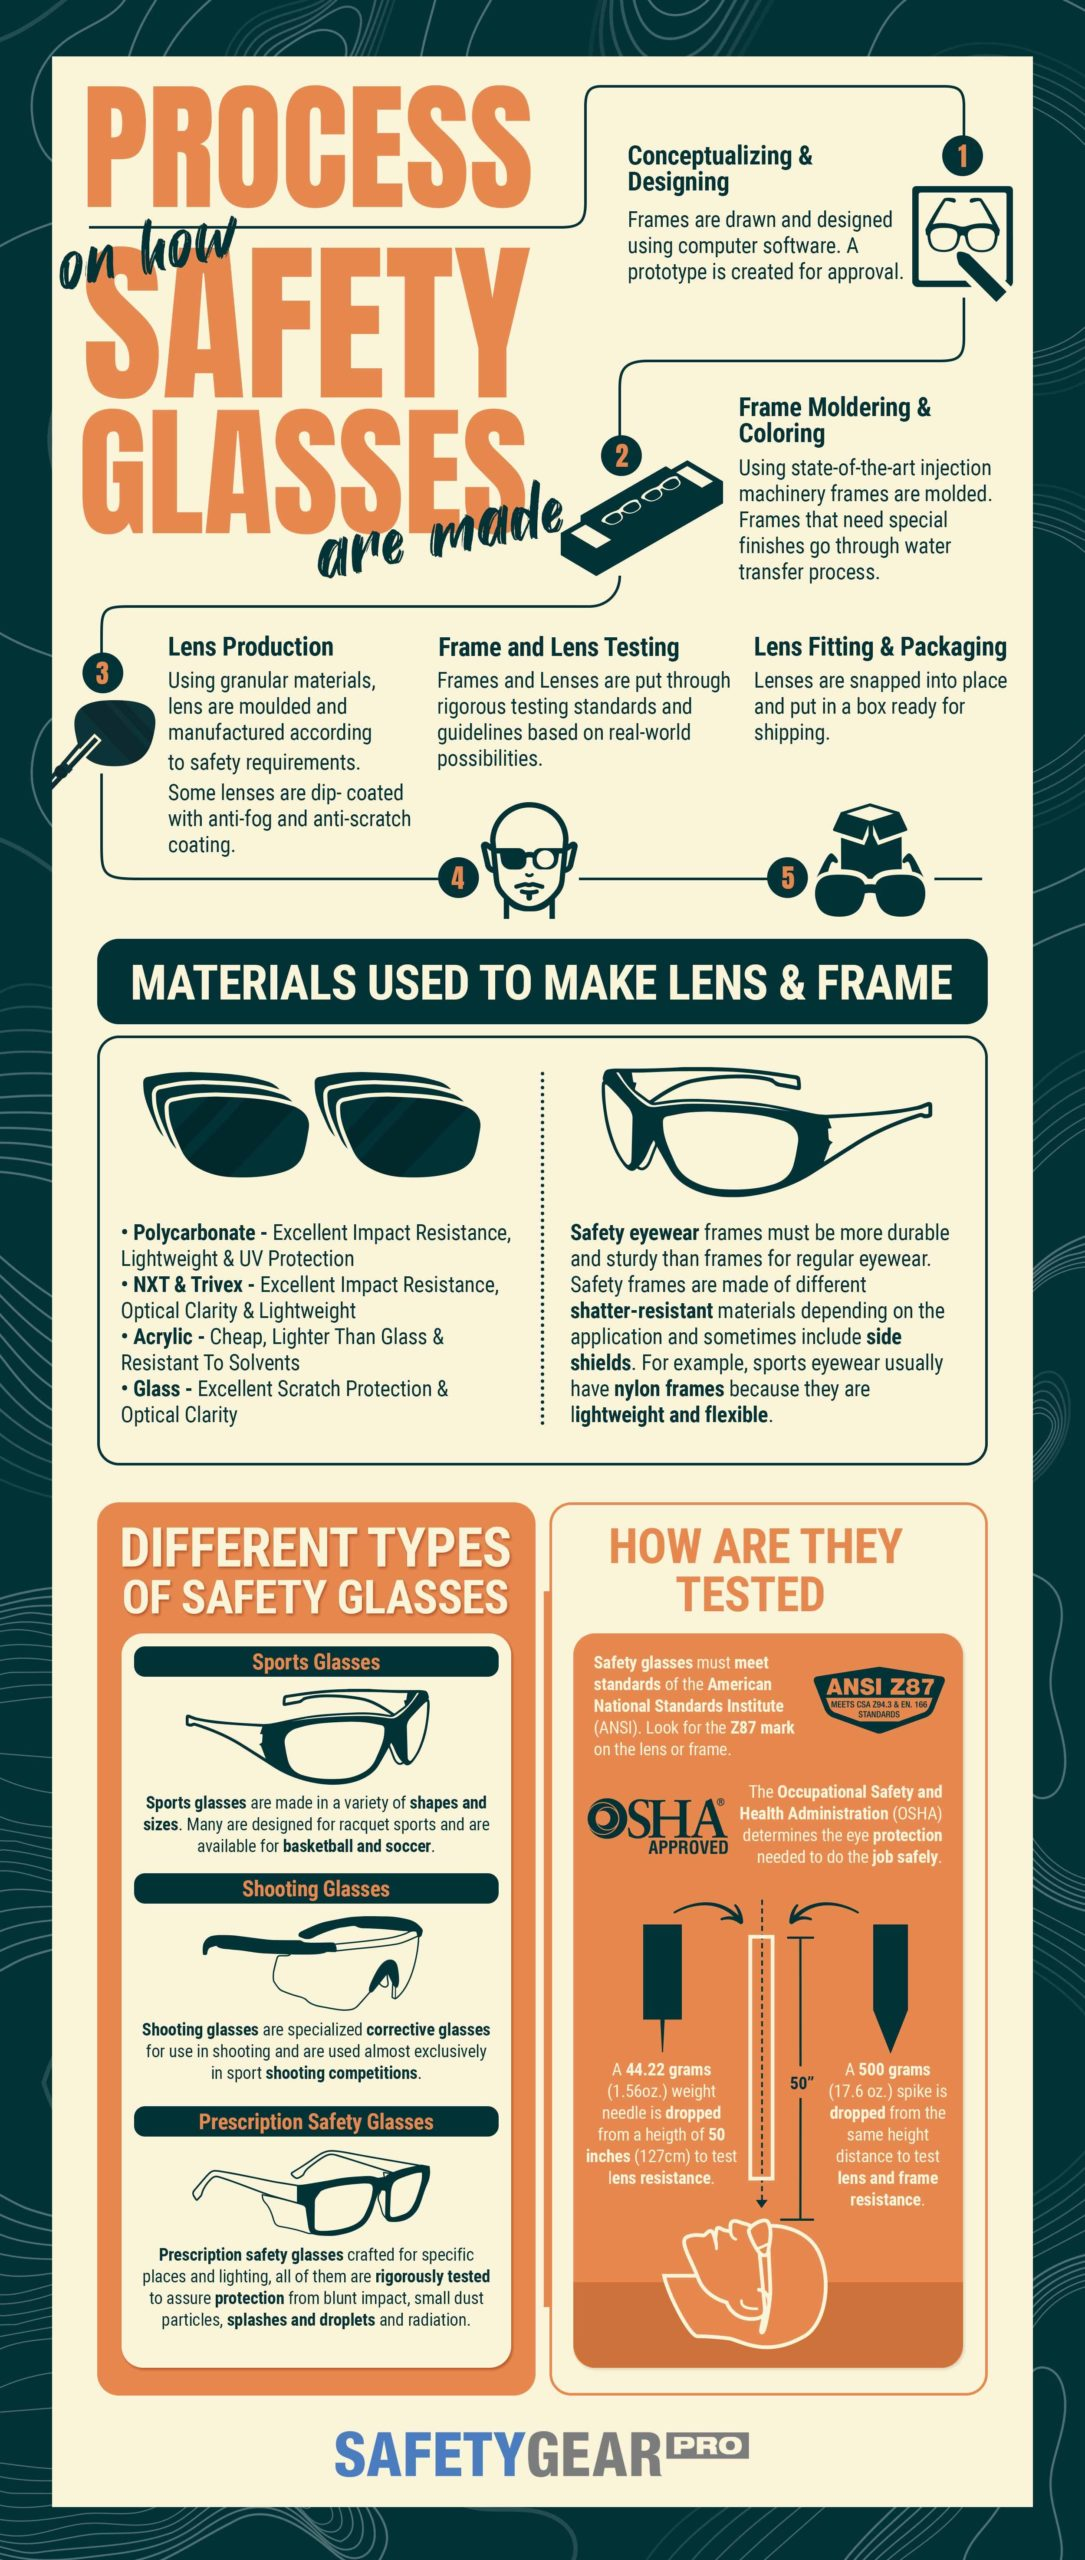 Process On How Safety Glasses Are Made